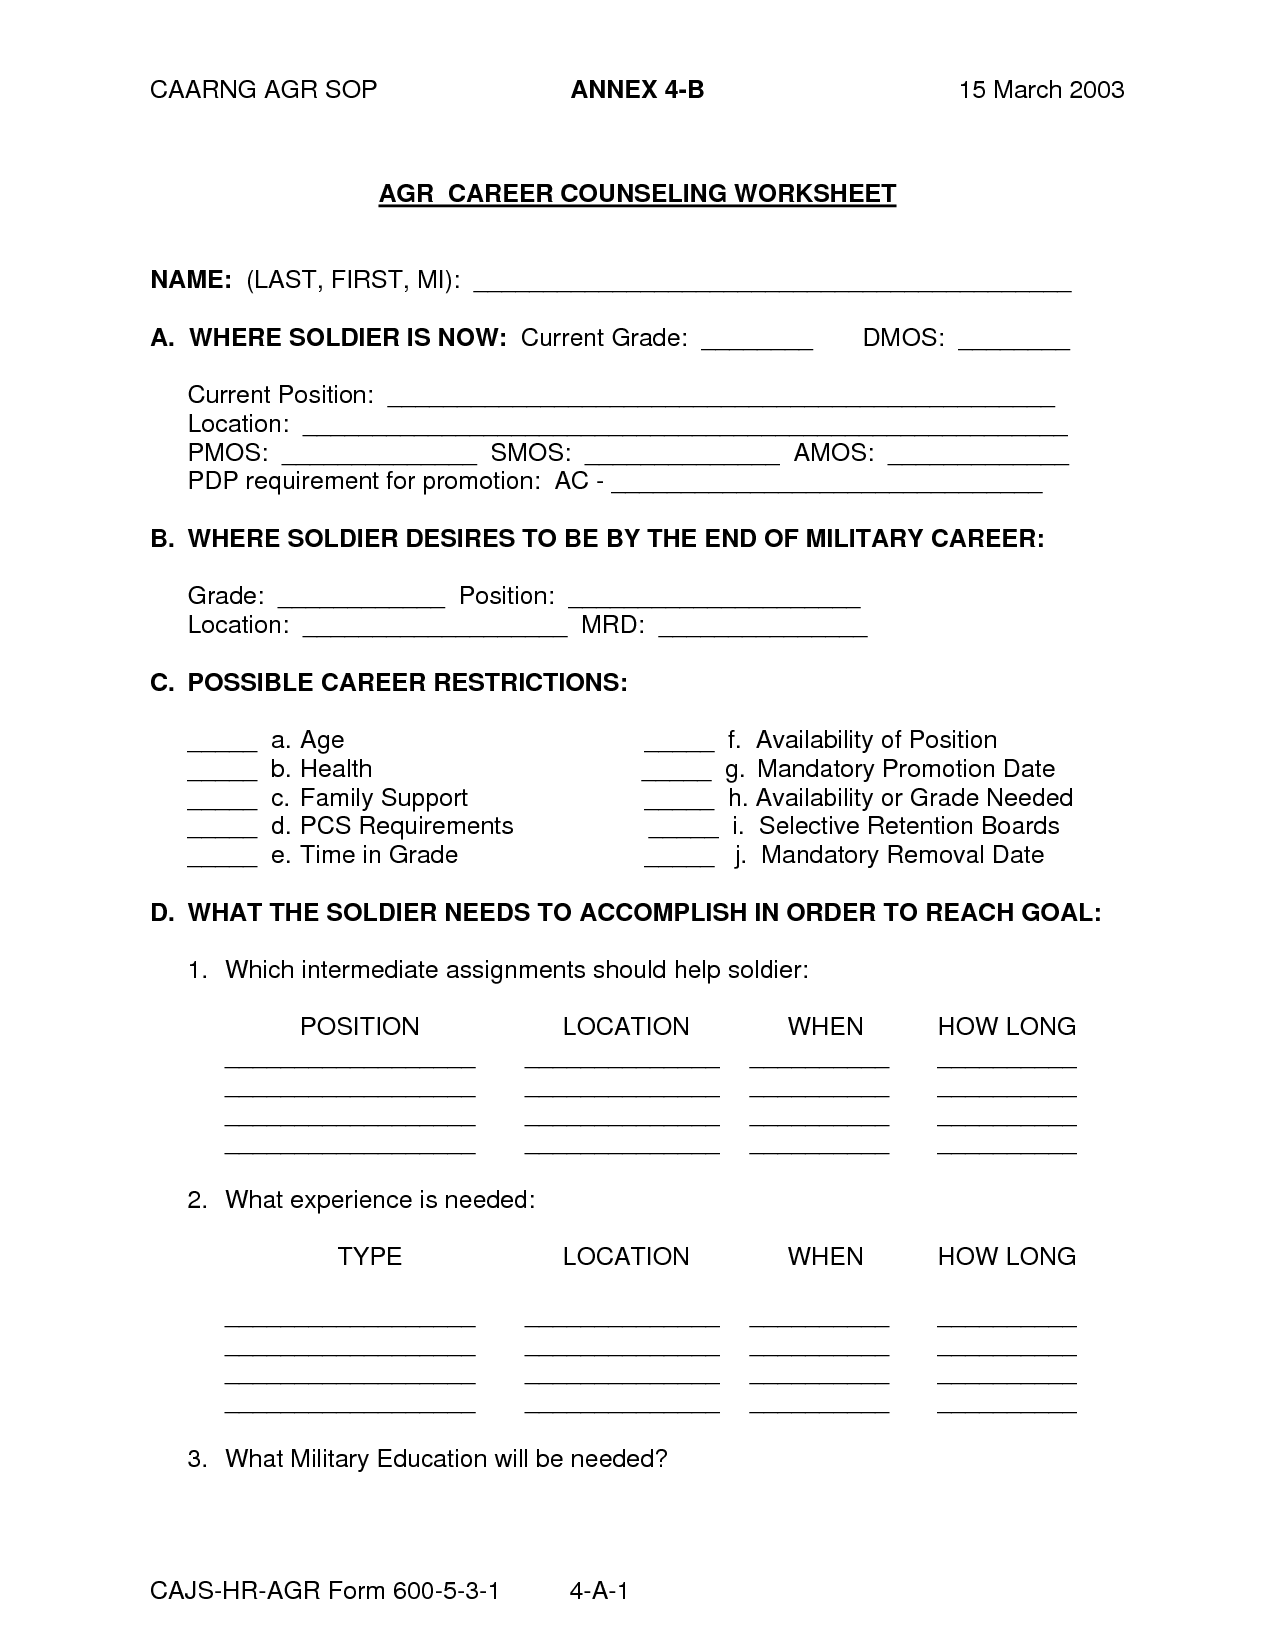 Academic Counseling Worksheet